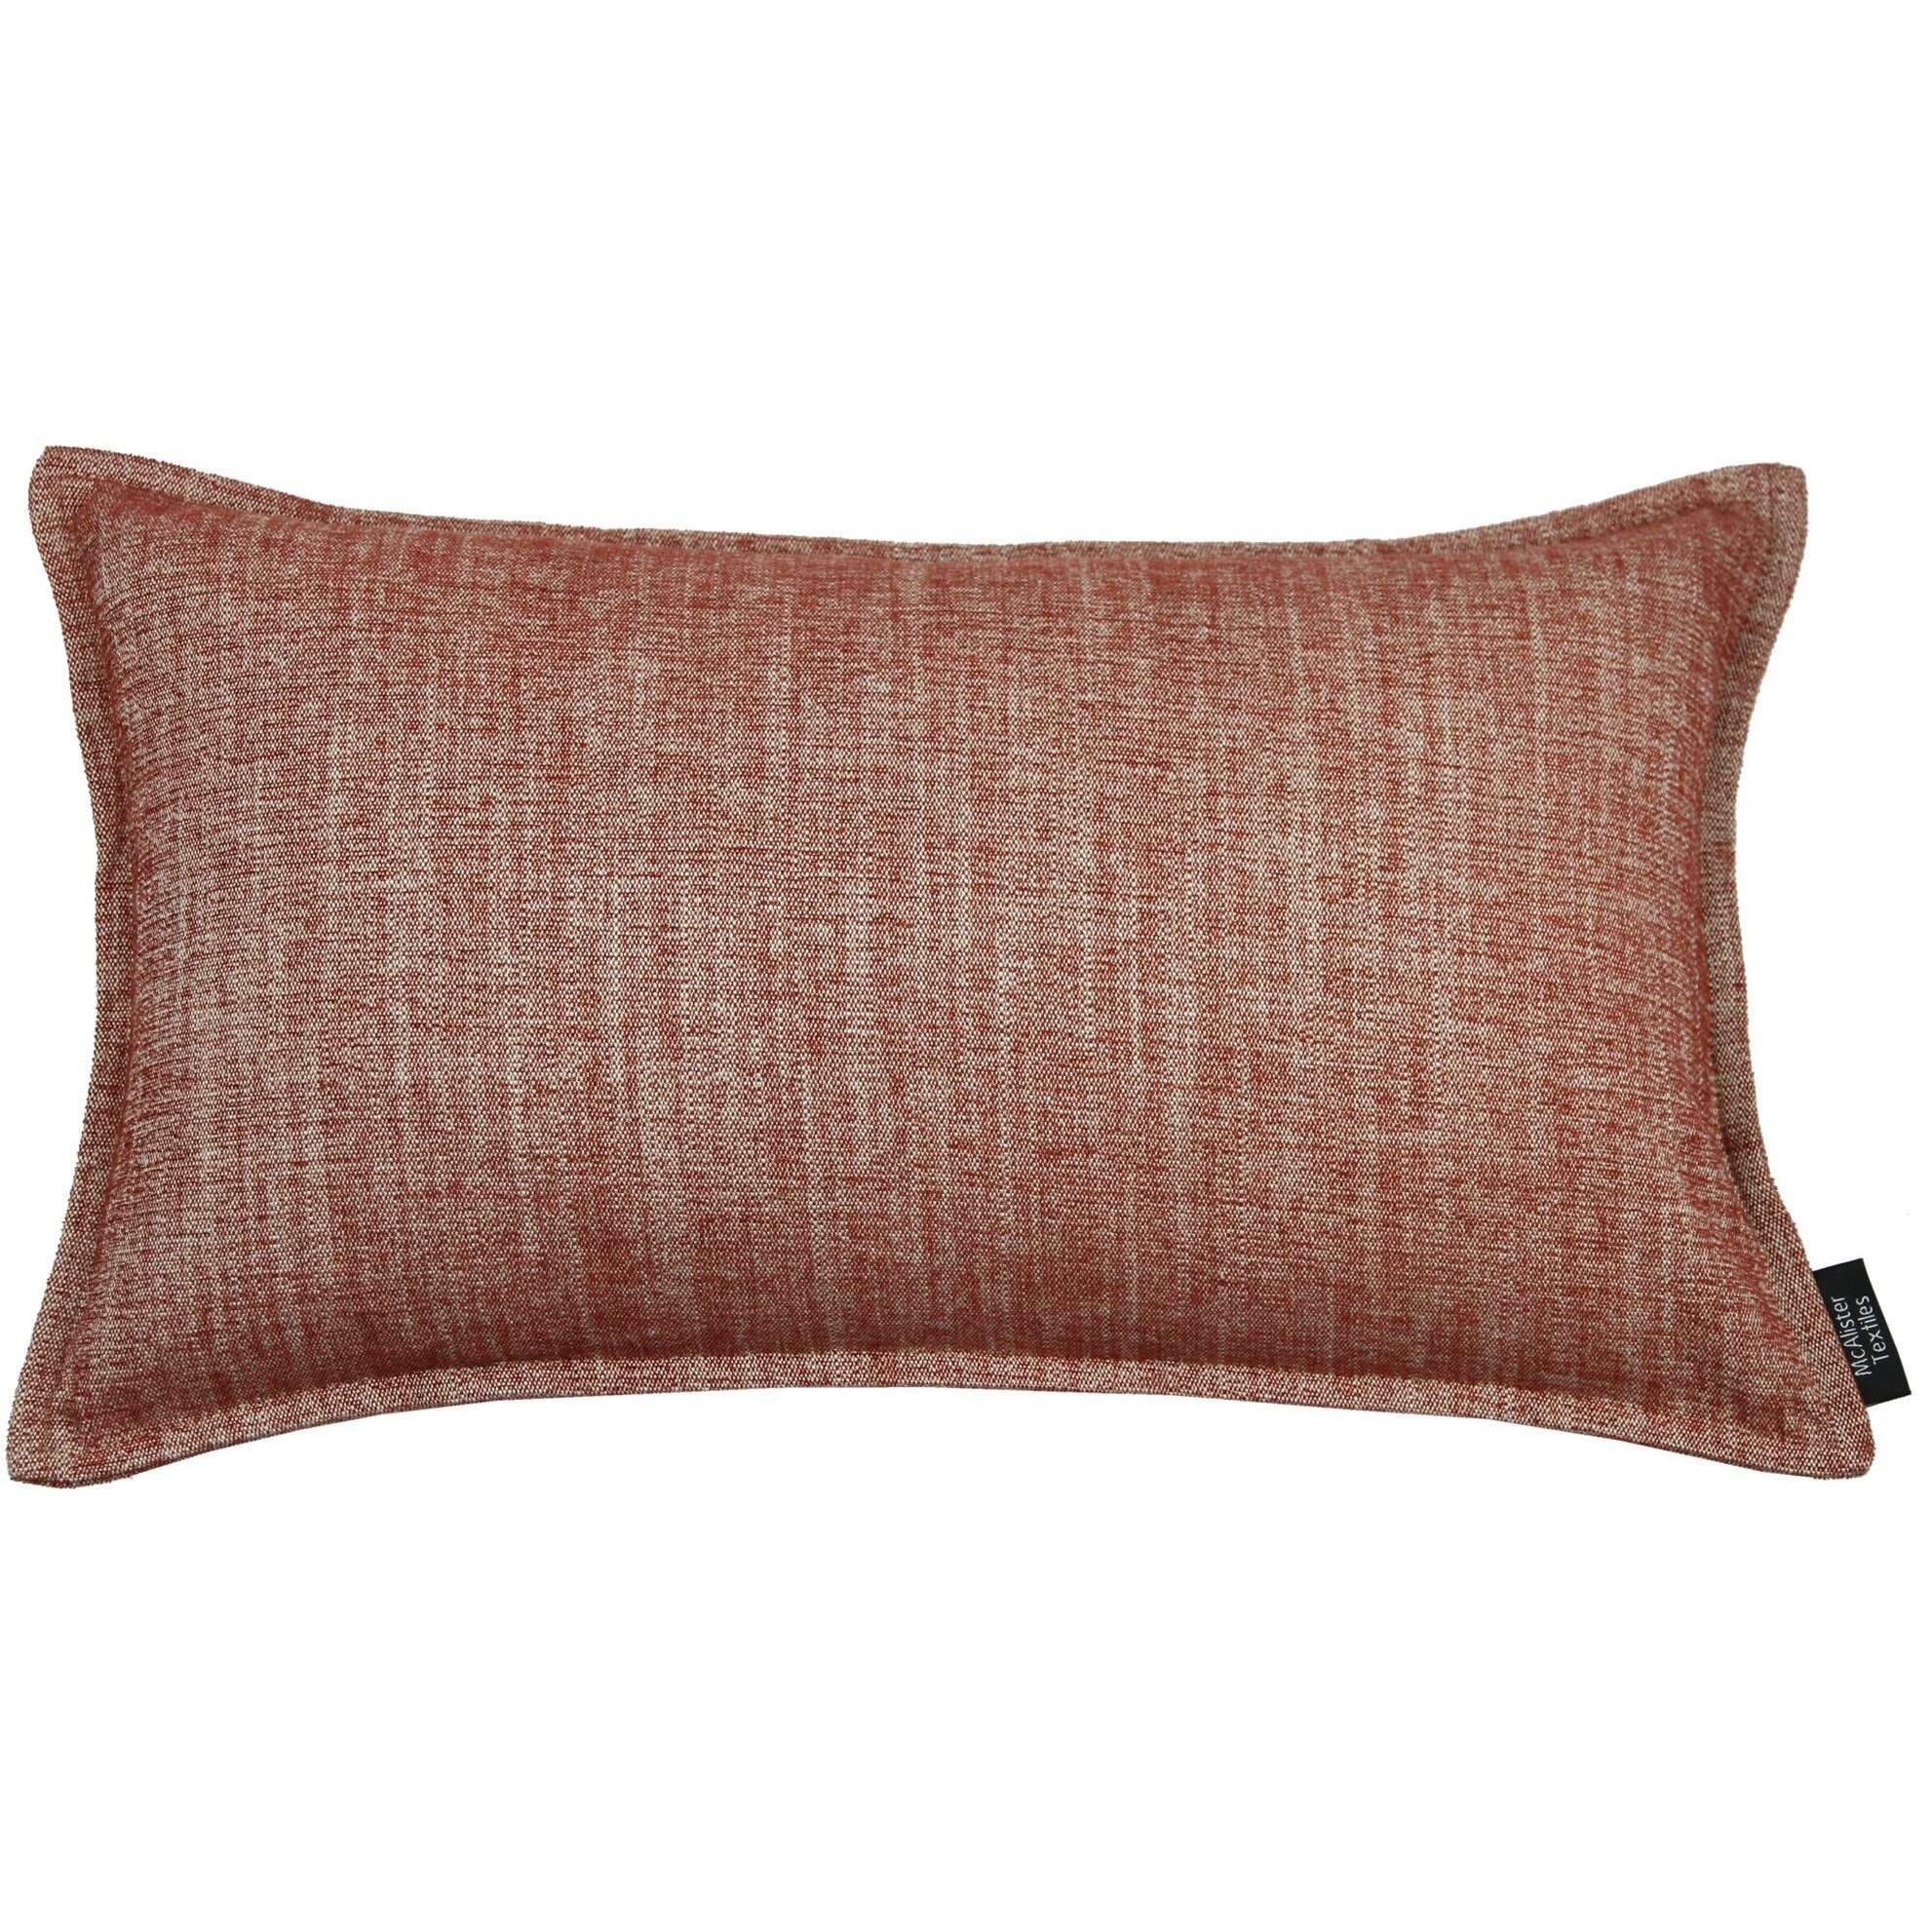 McAlister Textiles Rhumba Burnt Orange Cushion Cushions and Covers Cover Only 50cm x 30cm